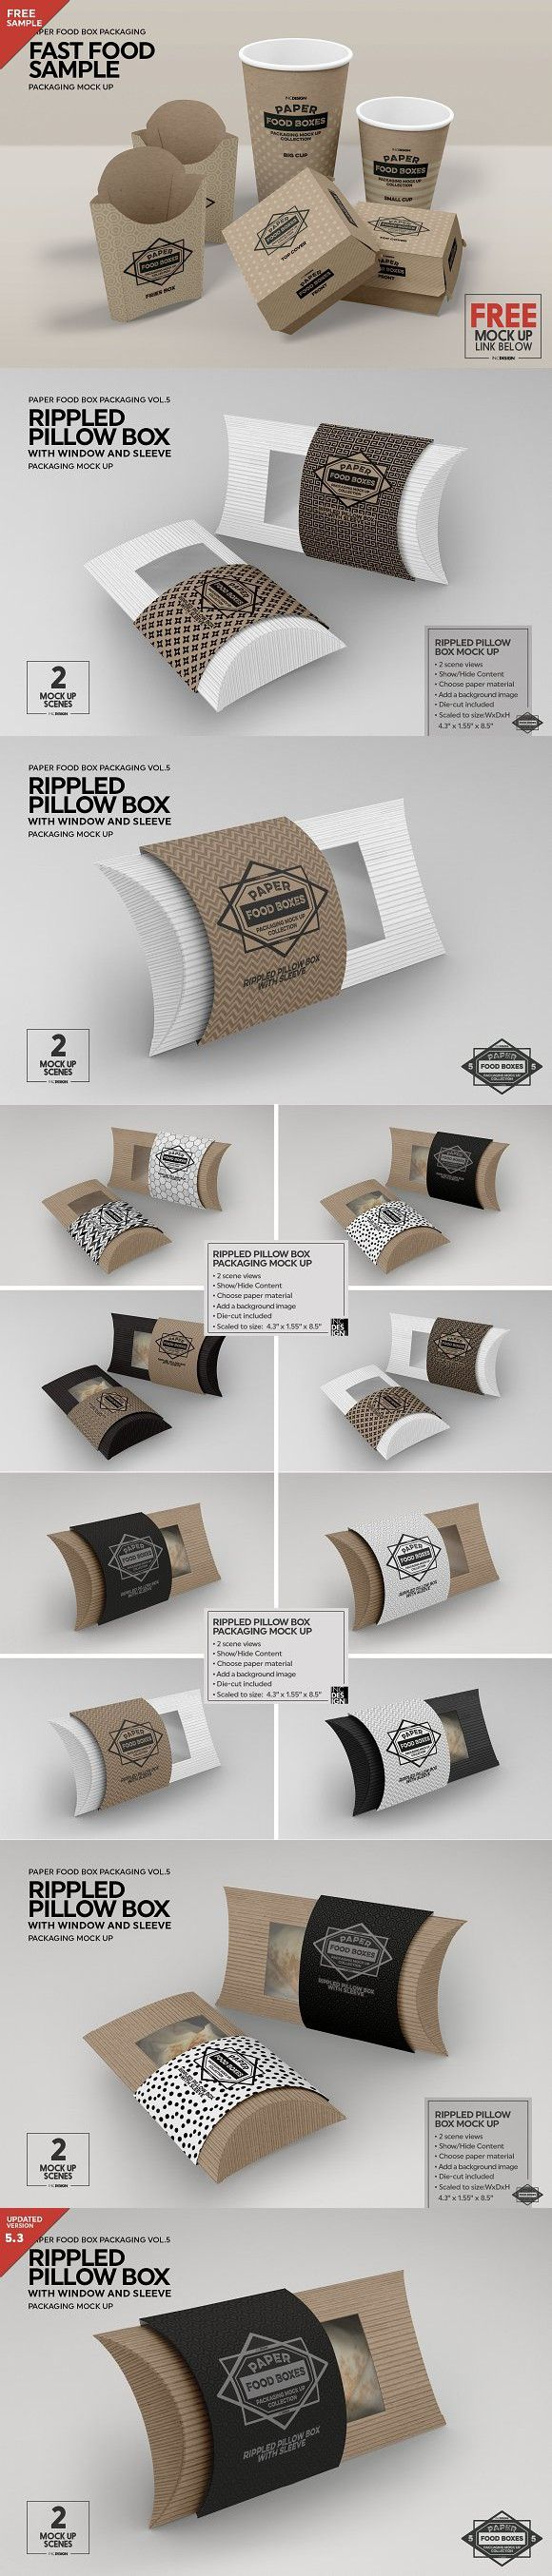 Rippled pillow box packaging mockup window design pinterest